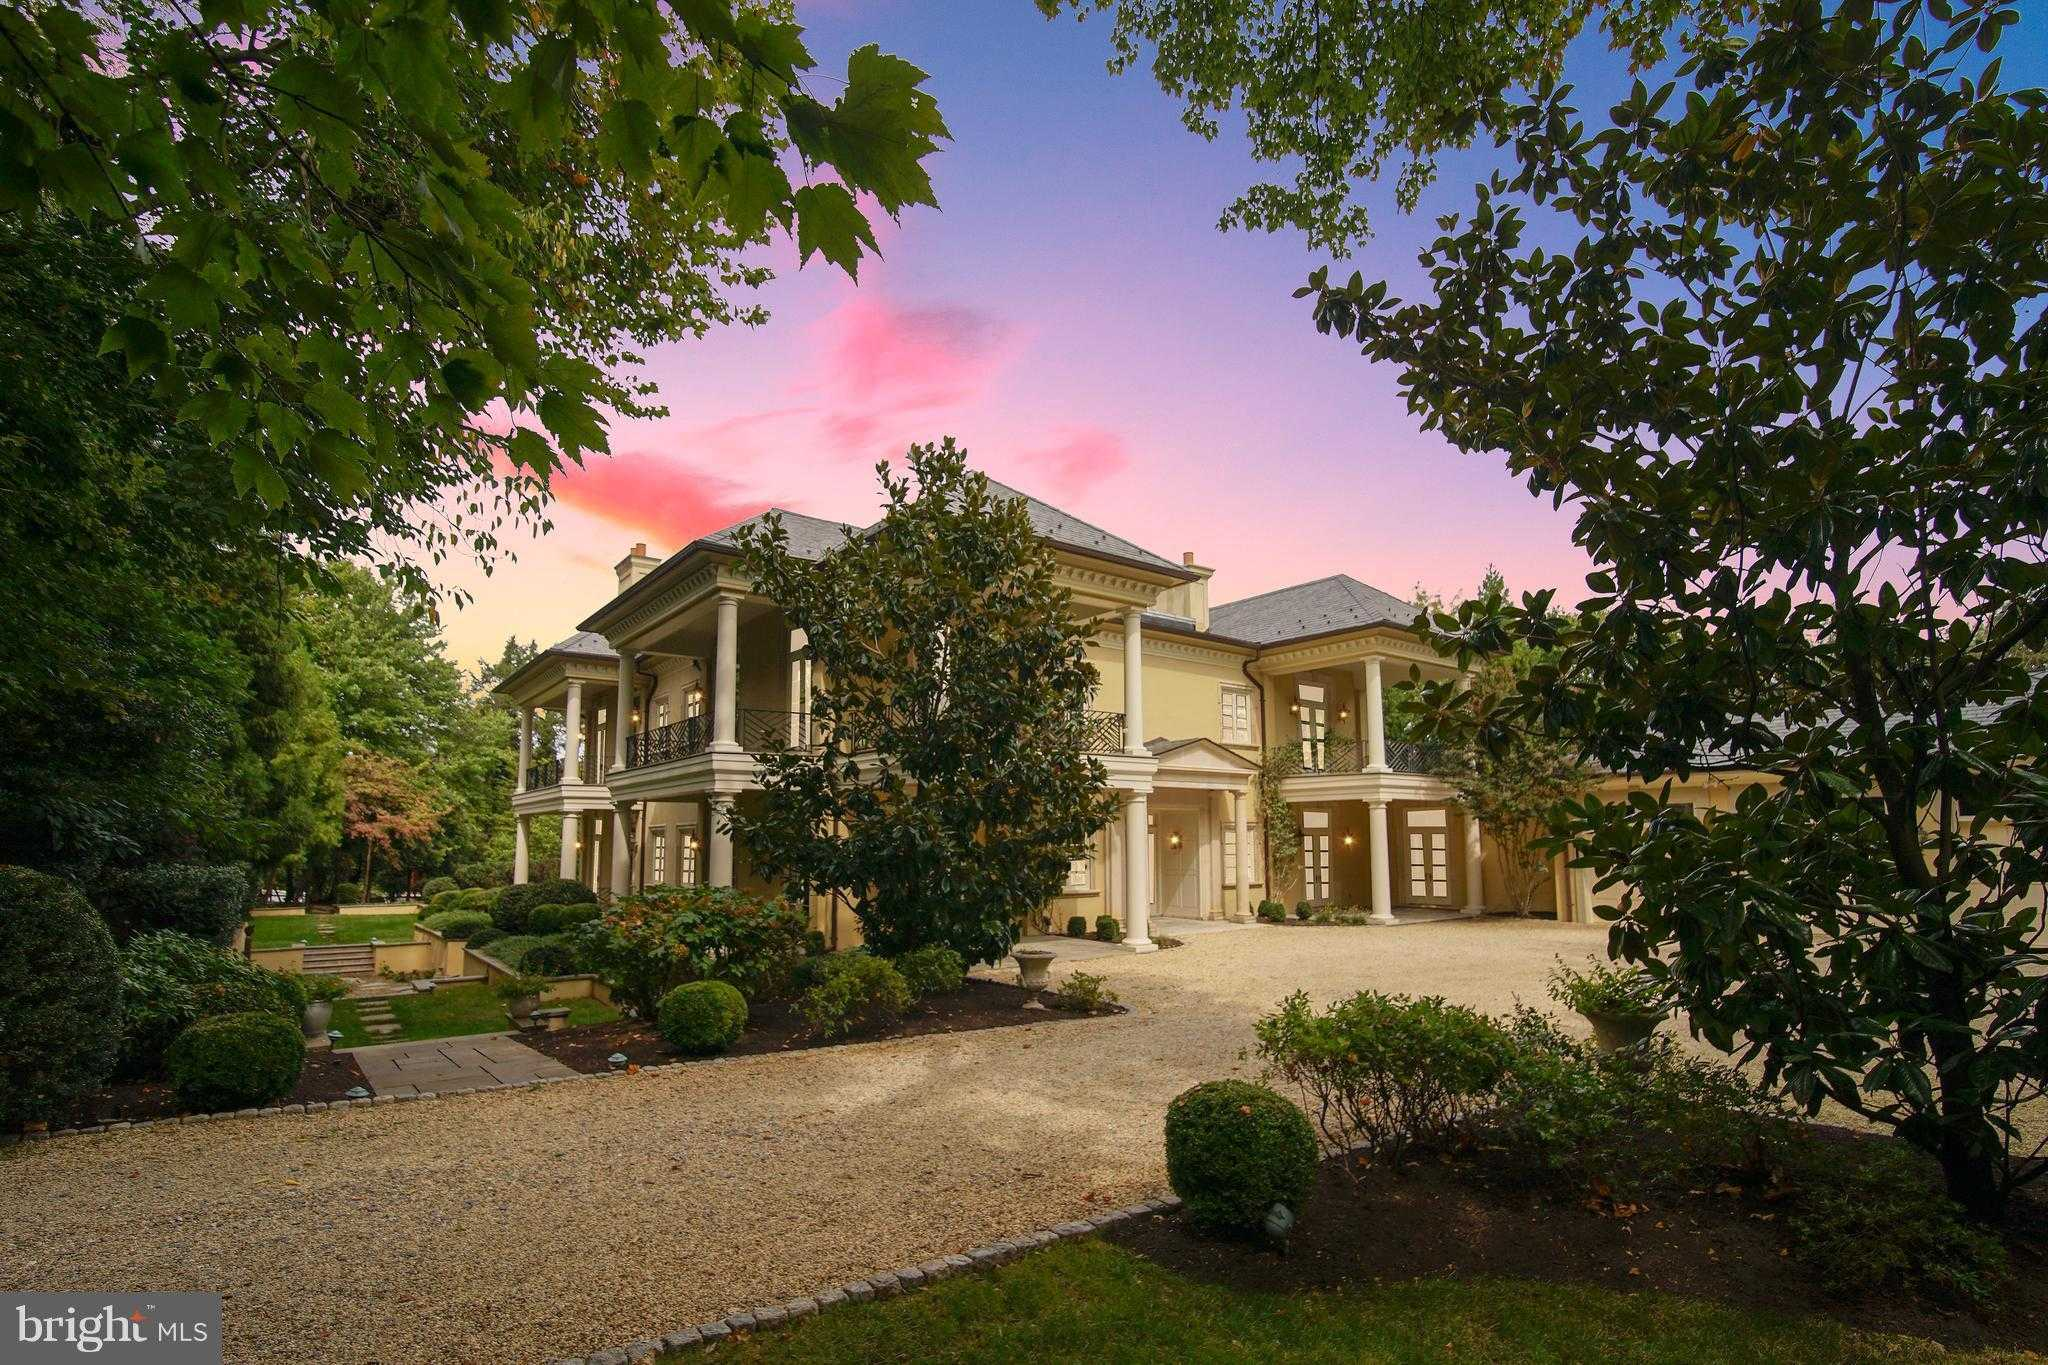 Homes for Sale in McLean - Chrissy and Lisa — REMAX by invitation